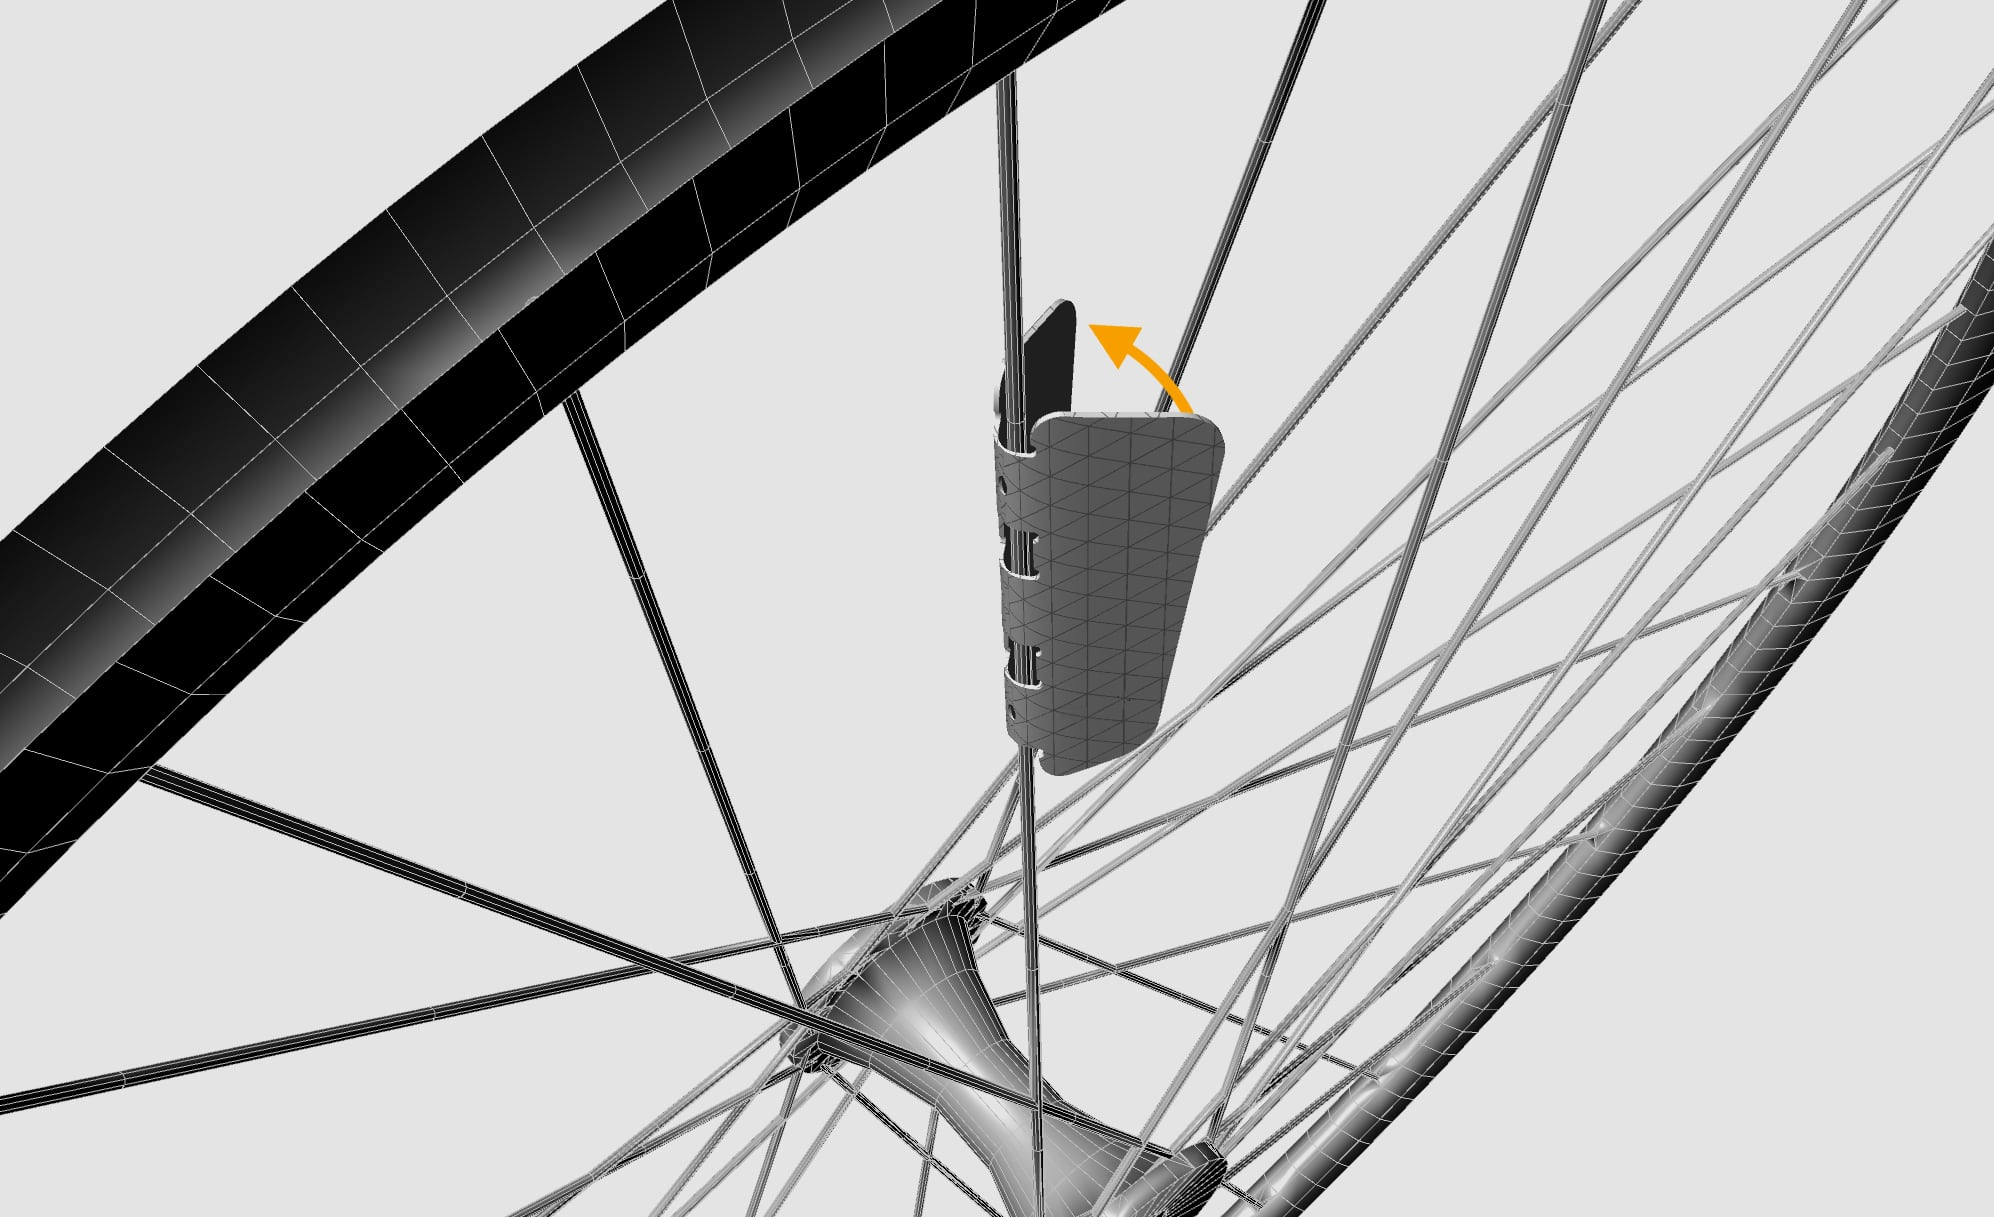 FLECTR ZERO spoke reflector wraps around the bicycle spoke